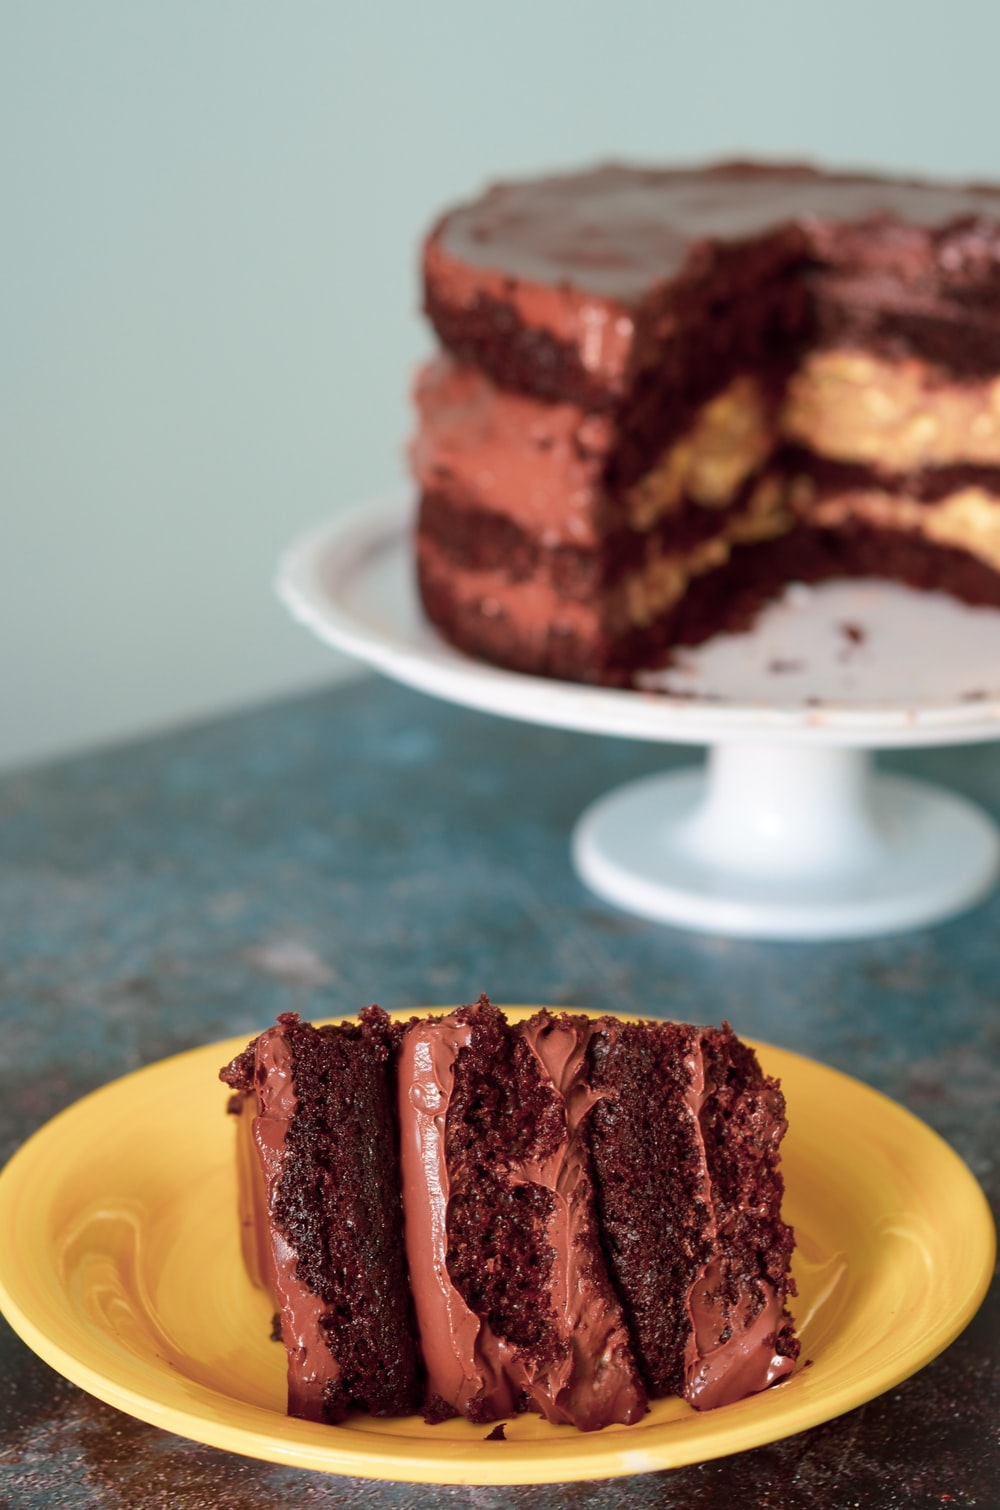 brown and white cake on yellow plate